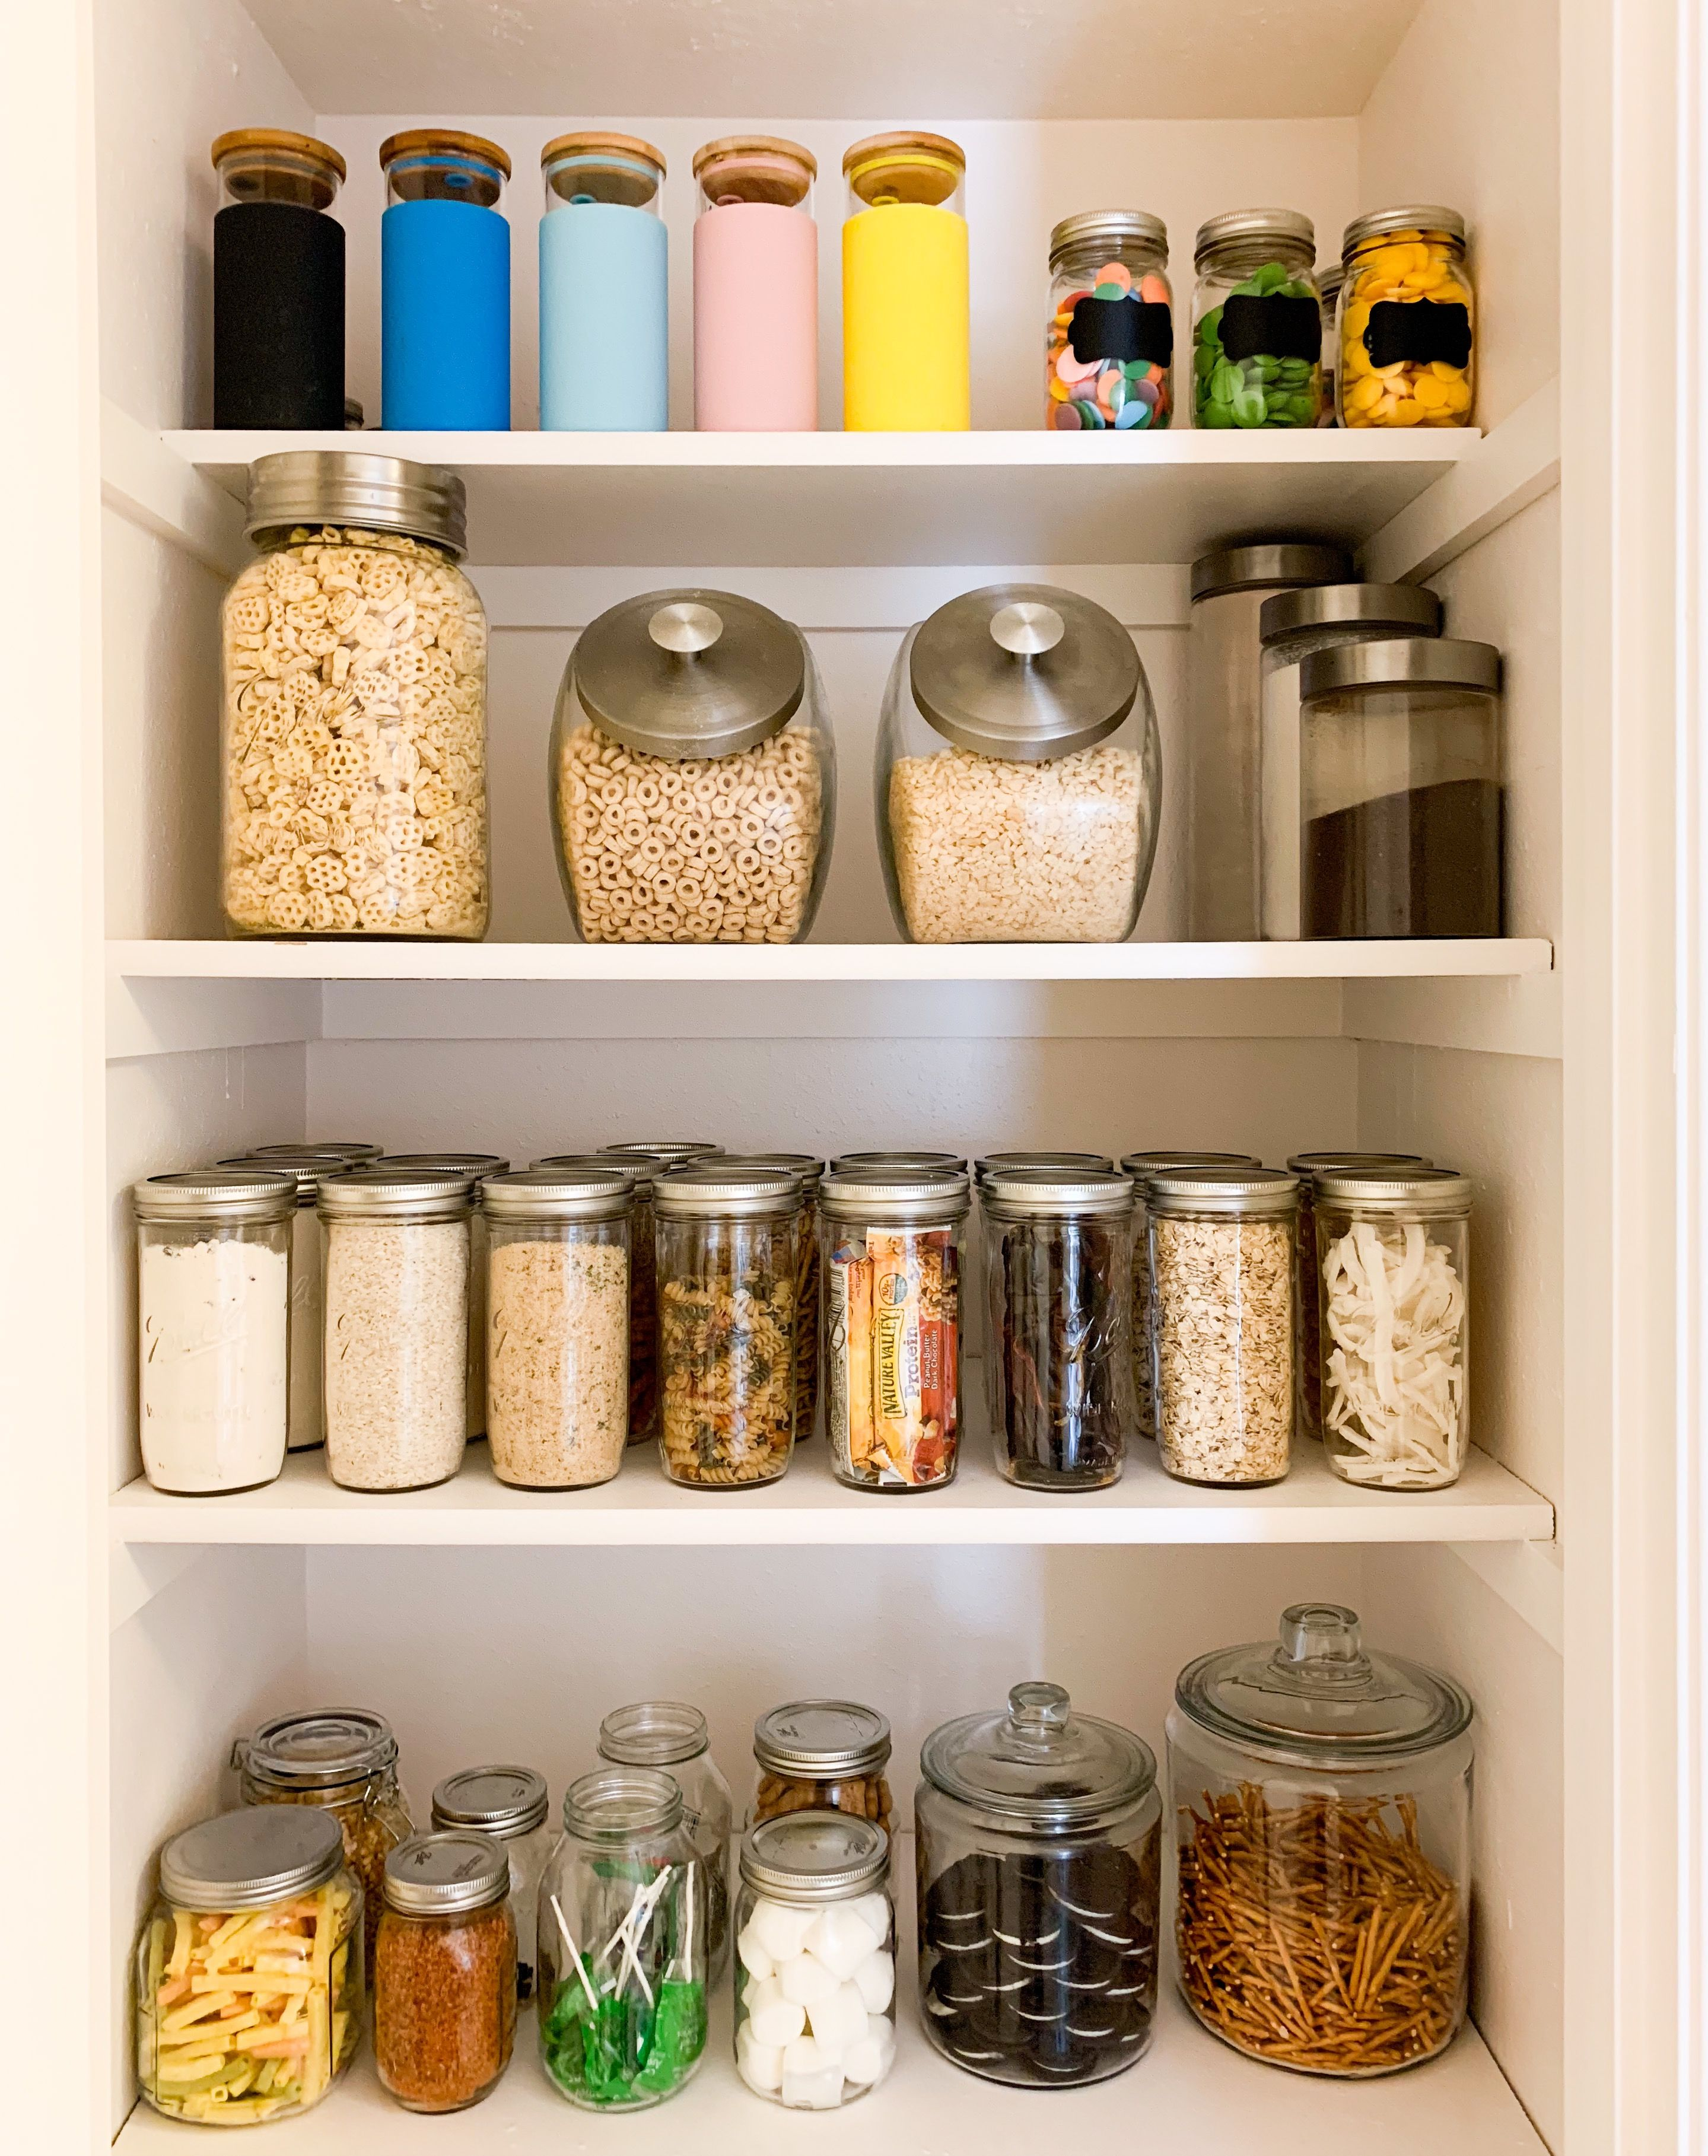 Organized Pantry With Mason Jars And Baskets Fruits Veggies